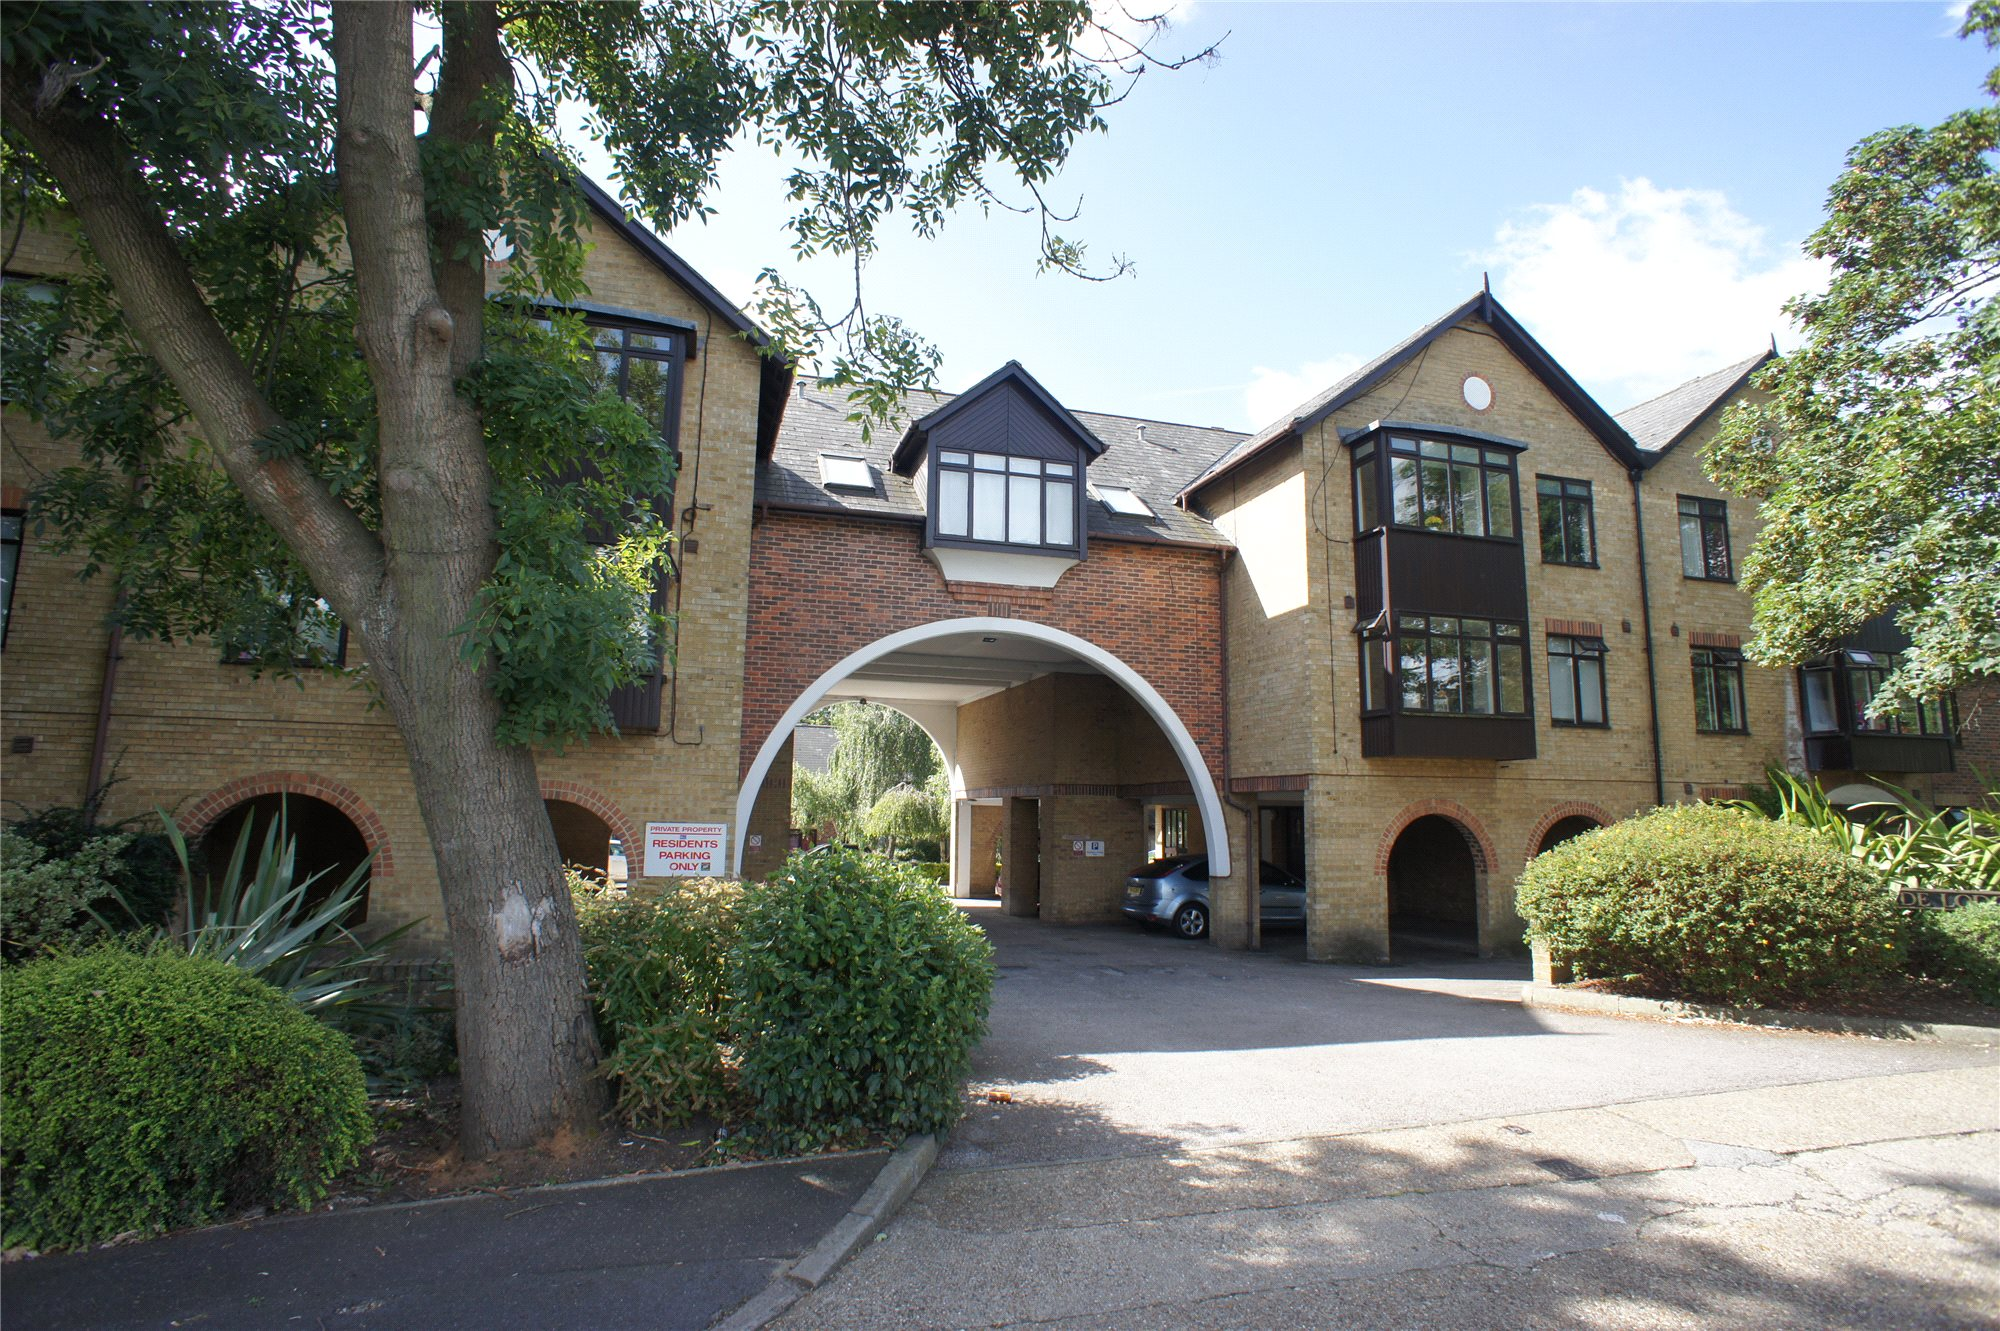 Parkside Lodge, Erith Road, Belvedere, Kent, DA17